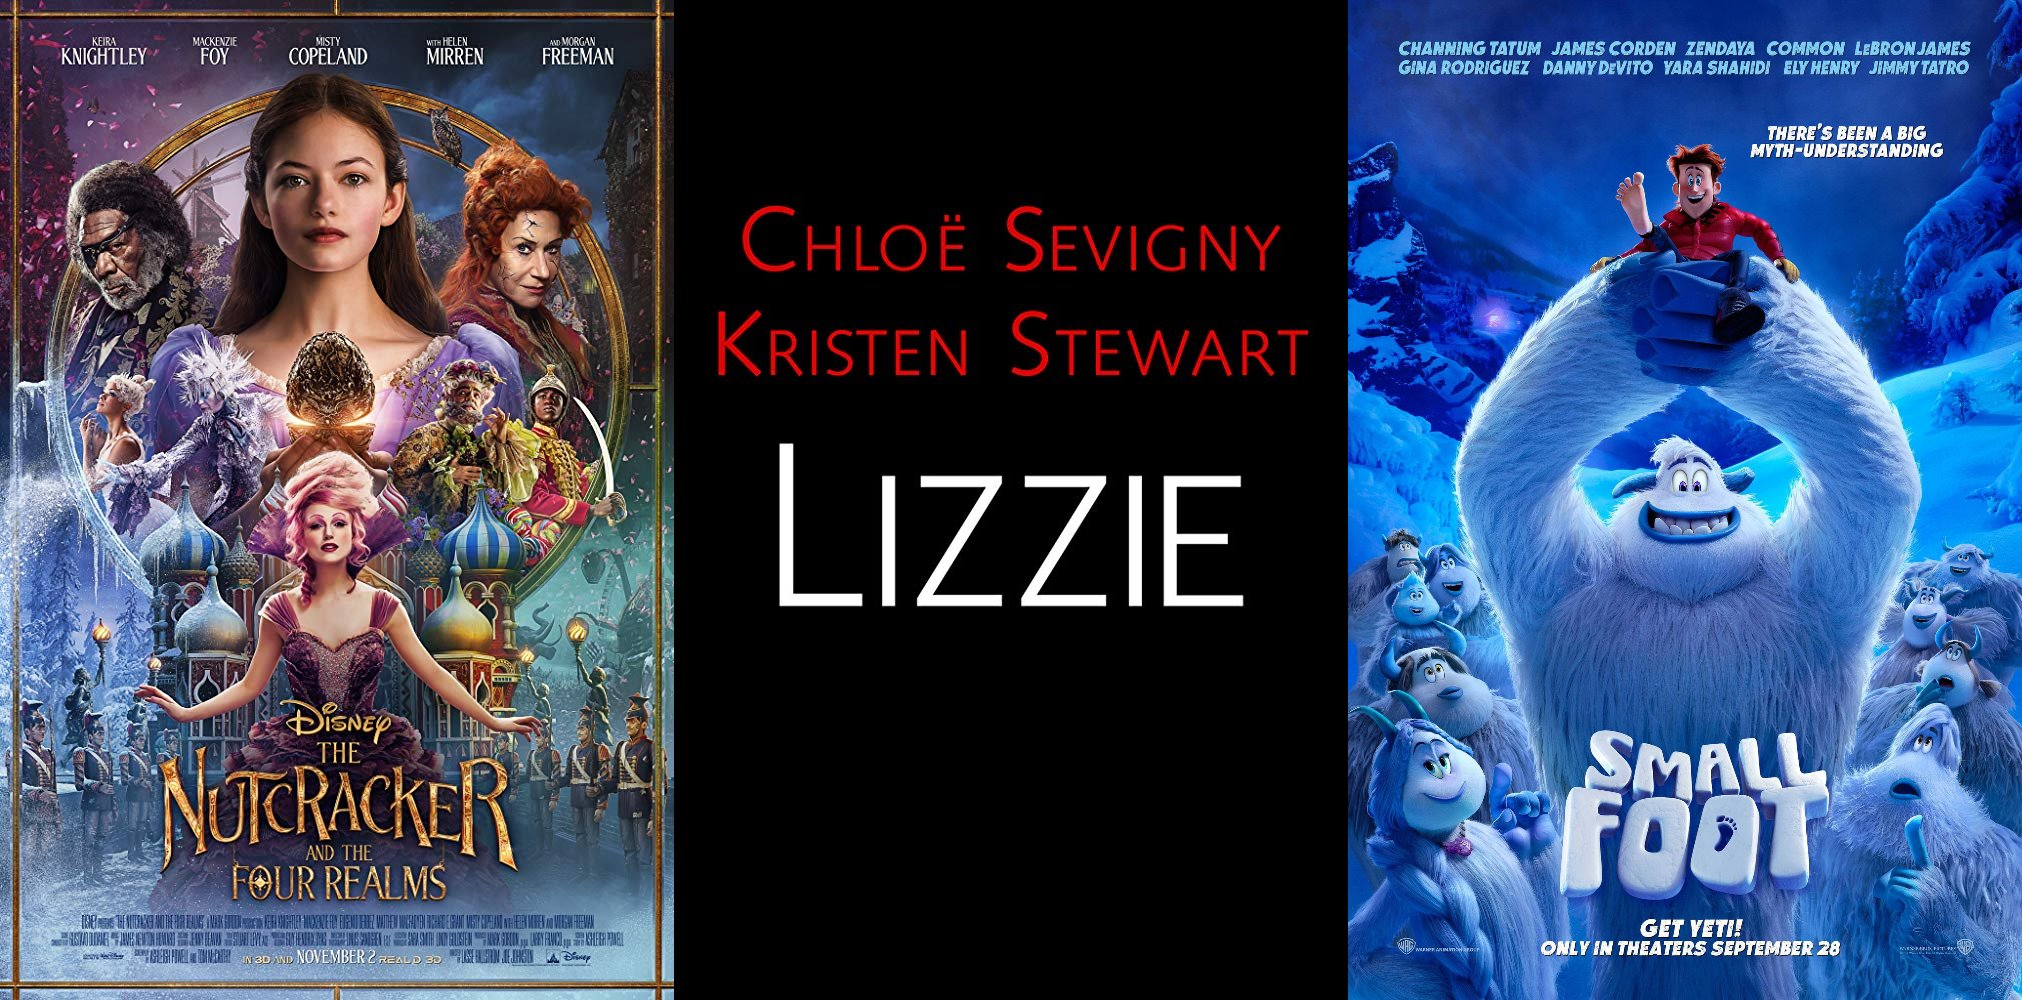 Trailer-Watchin' Wednesday: Smallfoot, Lizzie, The Nutcracker and the Four Realms